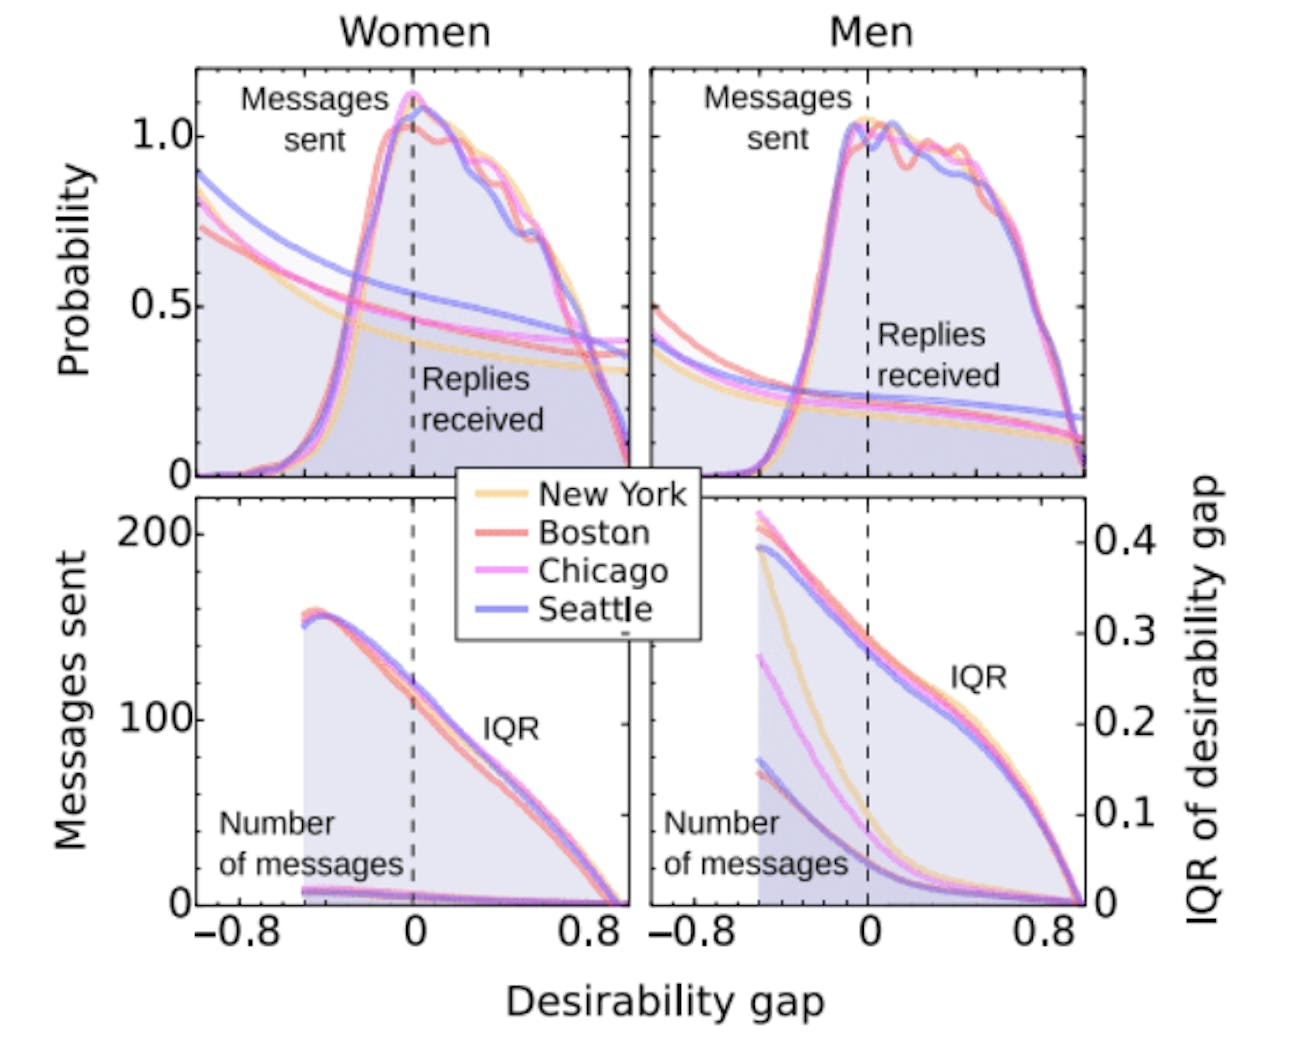 online dating desirability gap